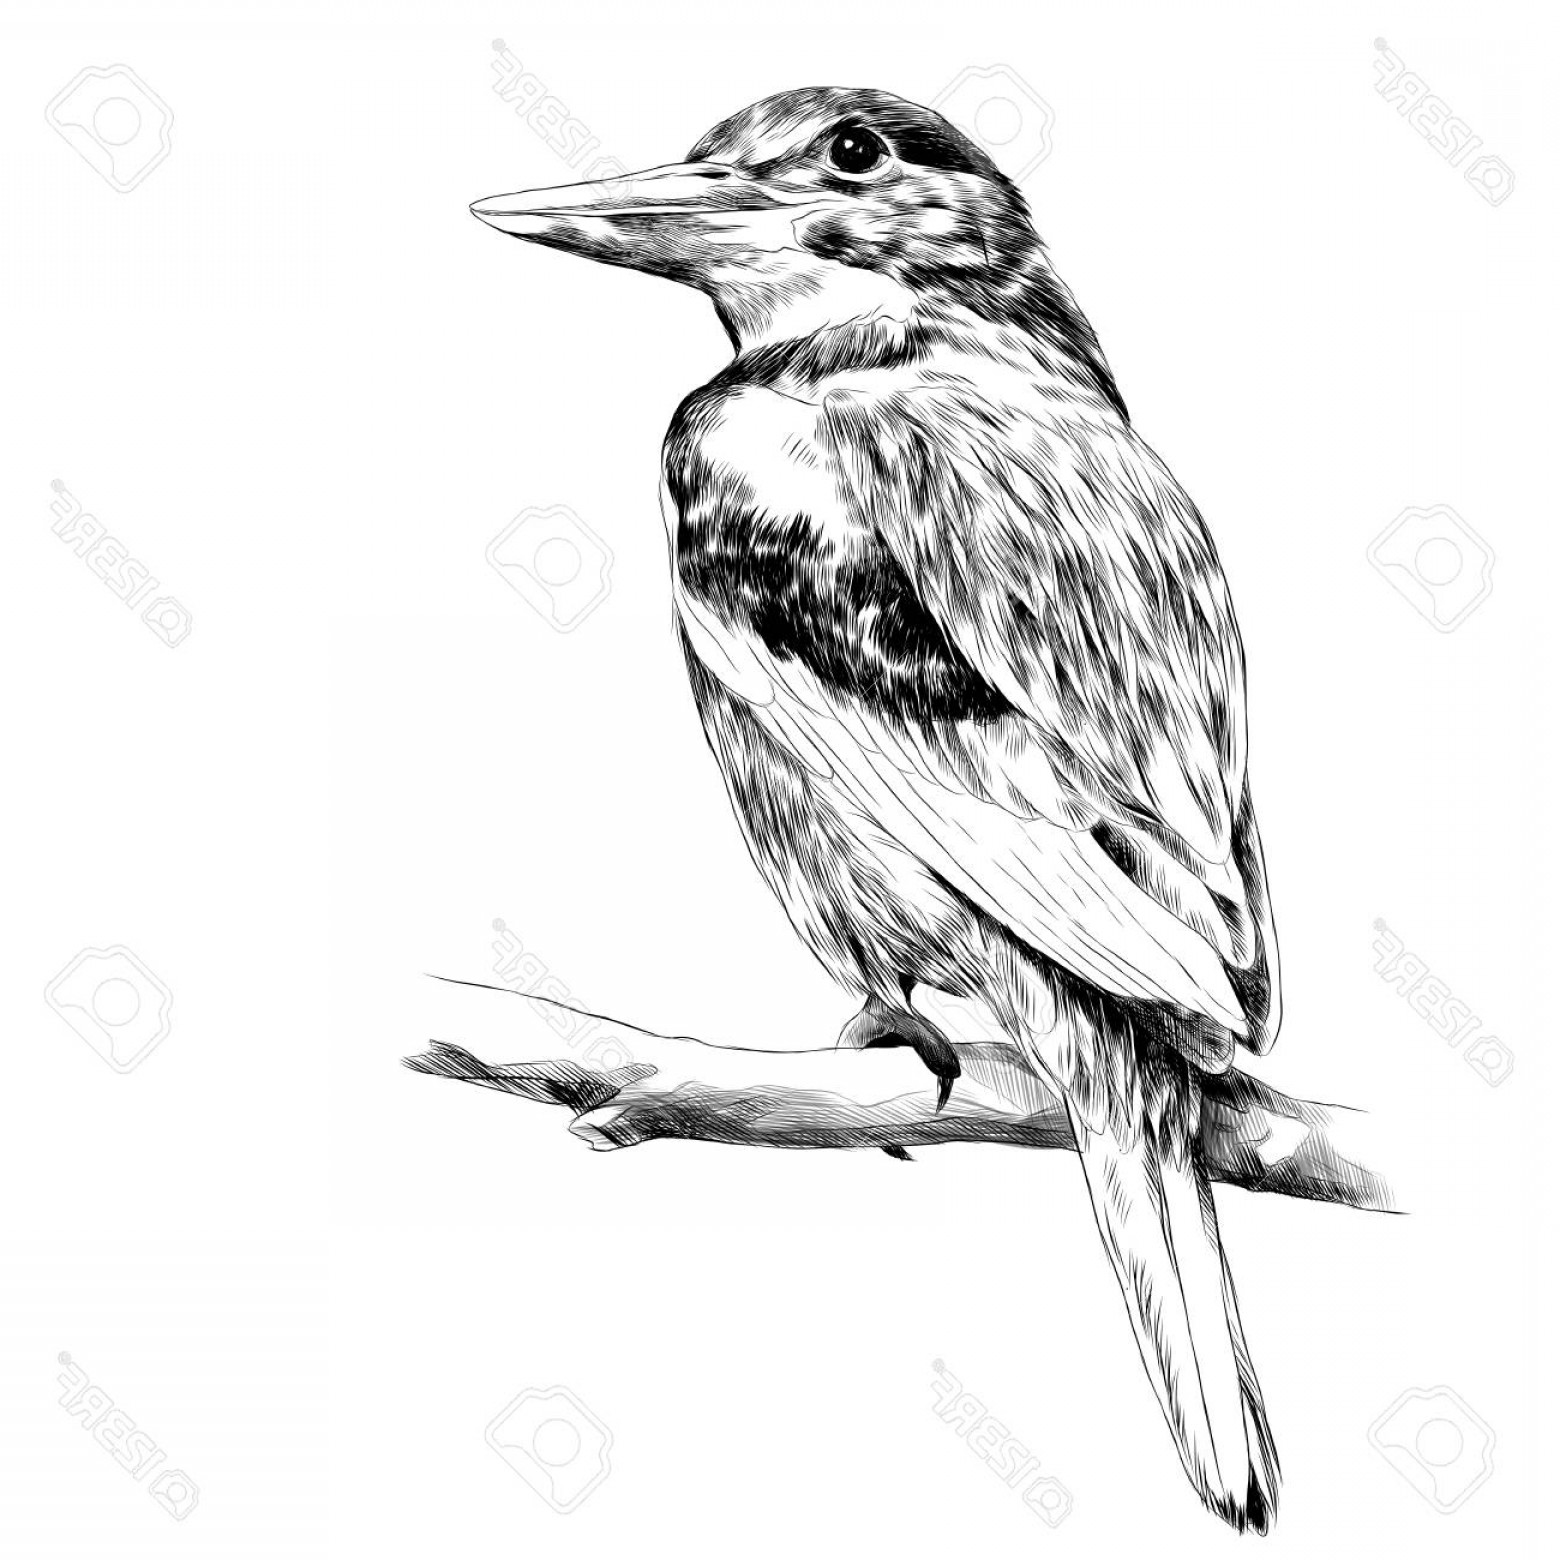 Black And White Bird Free Vector Graphics: Photostock Vector Alcyone Bird Sitting On A Branch Sketch Vector Graphics Black And White Drawing